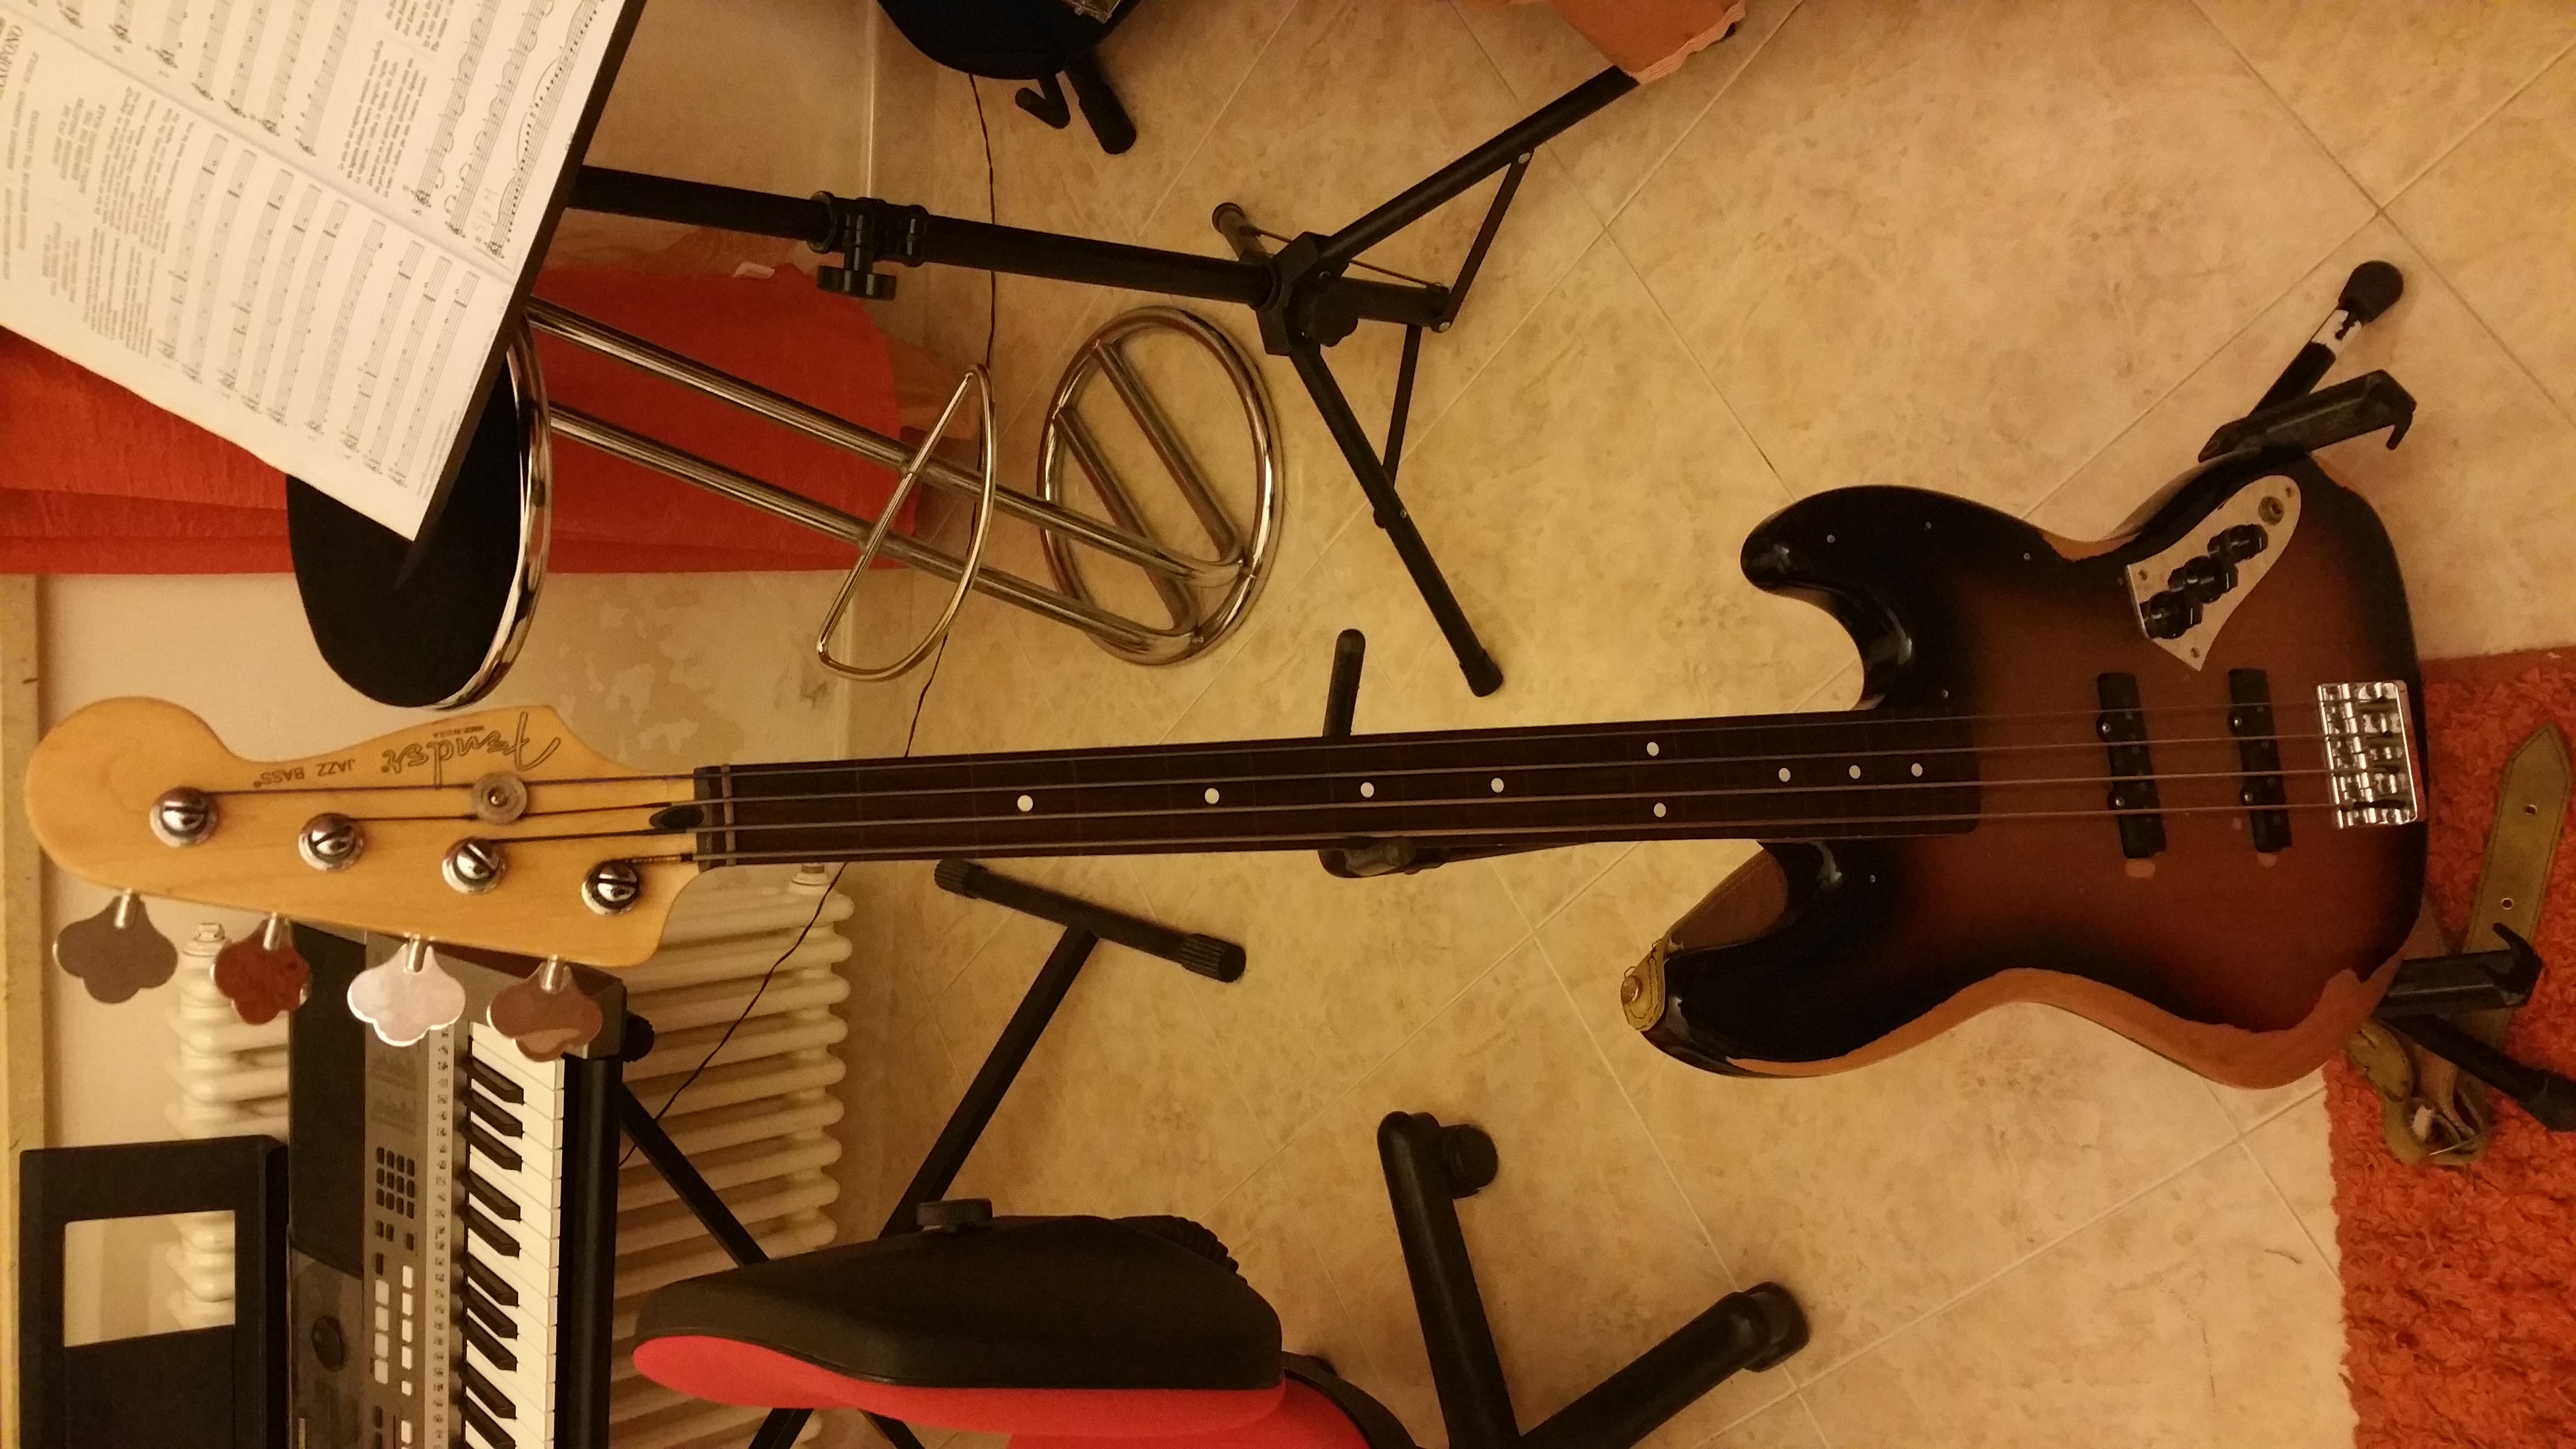 Bass fender jazz bass